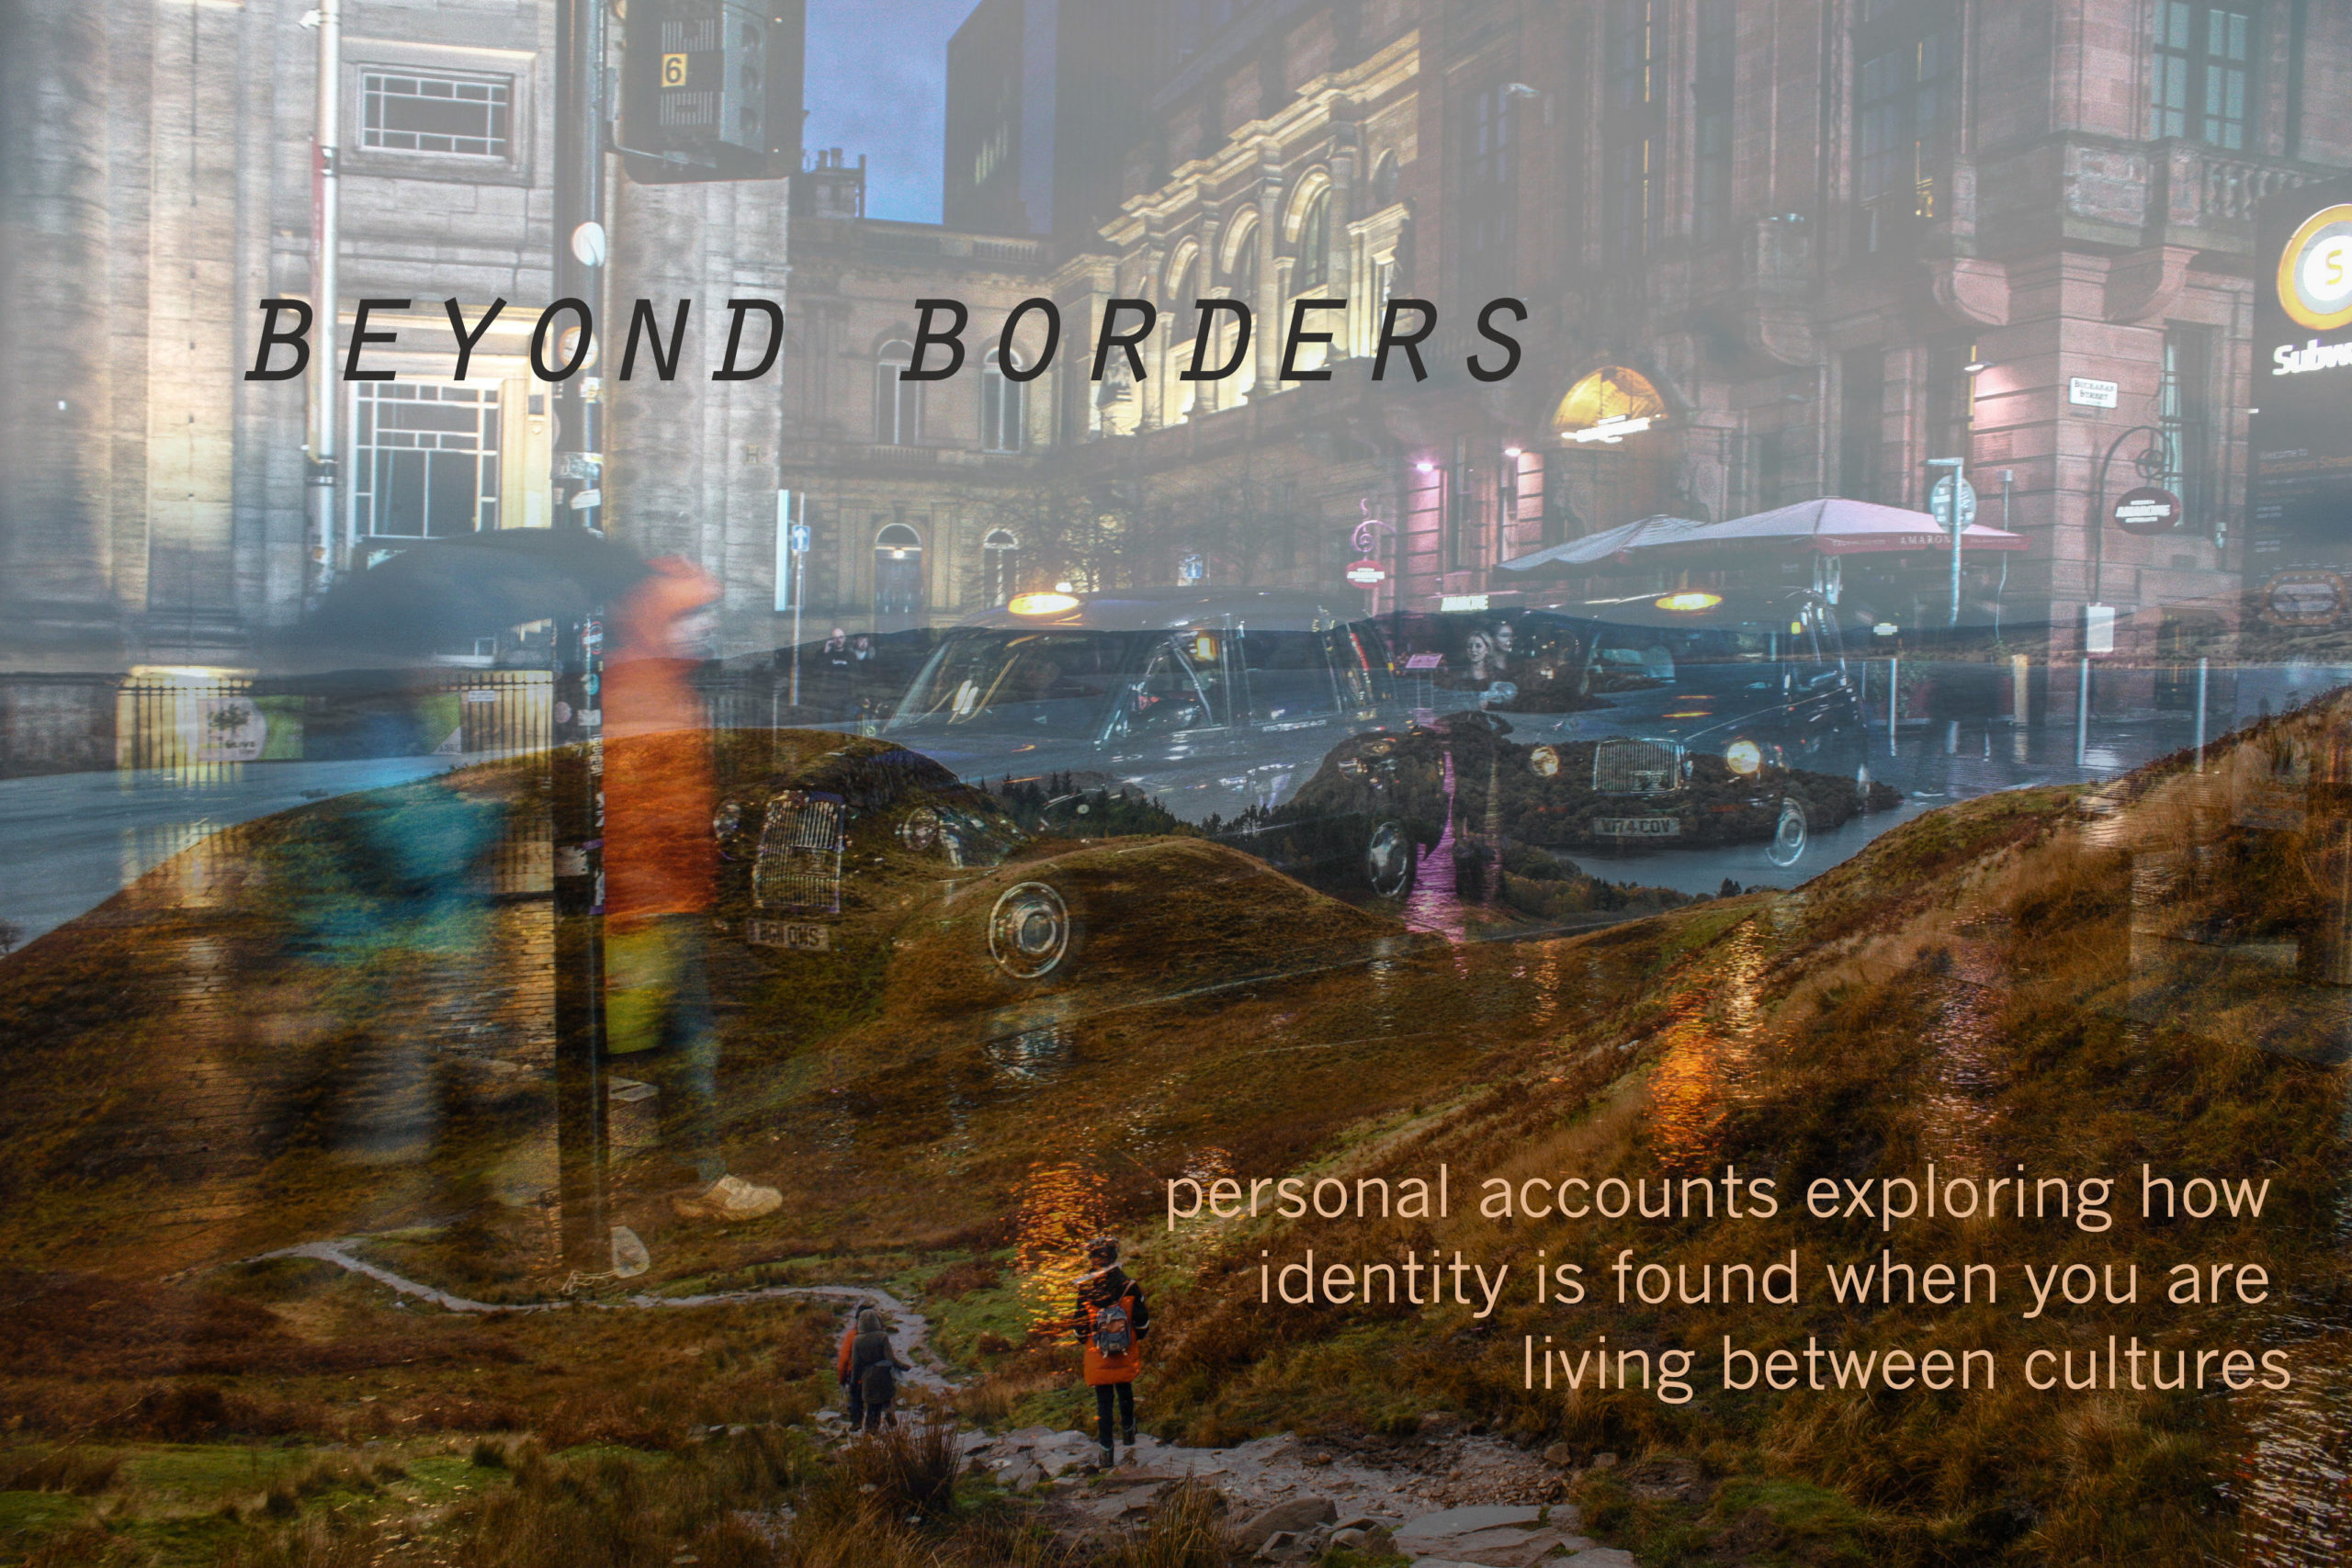 Beyond Borders #6: personal accounts exploring how identity is found when you are living between cultures